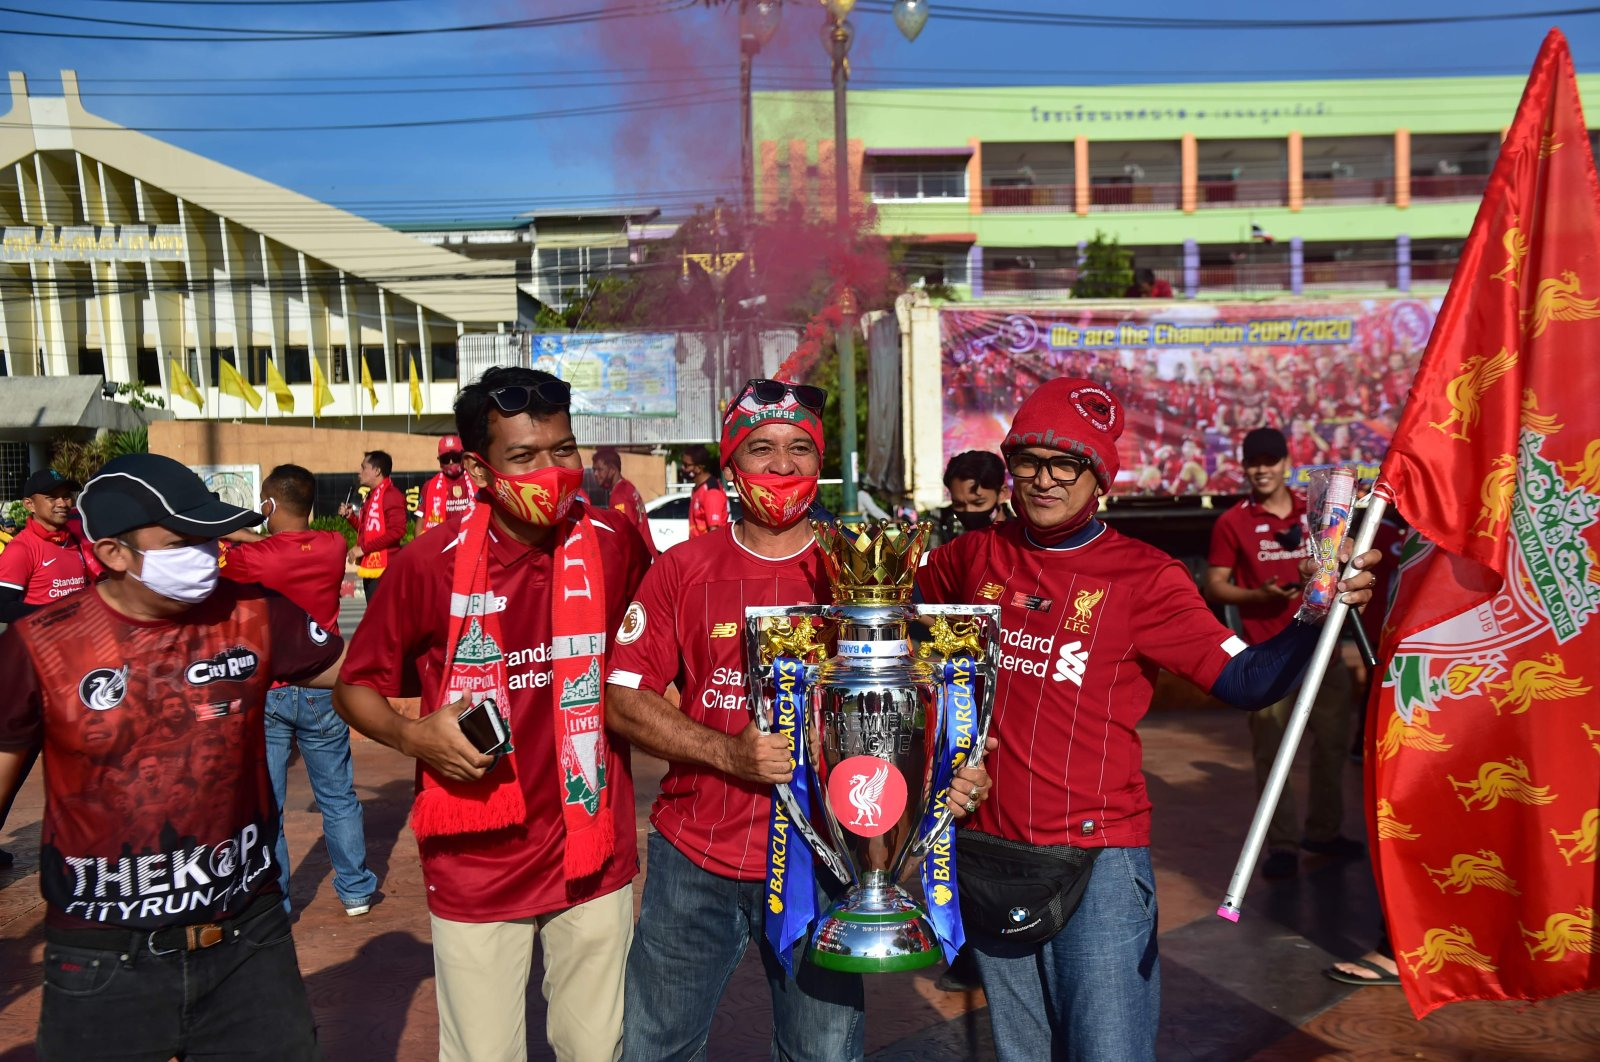 Thai fans of Liverpool Football Club celebrate the English Premier League win with a replica trophy cup as they gather for a parade in the southern Thai province of Narathiwat on July 27, 2020. (AFP Photo)